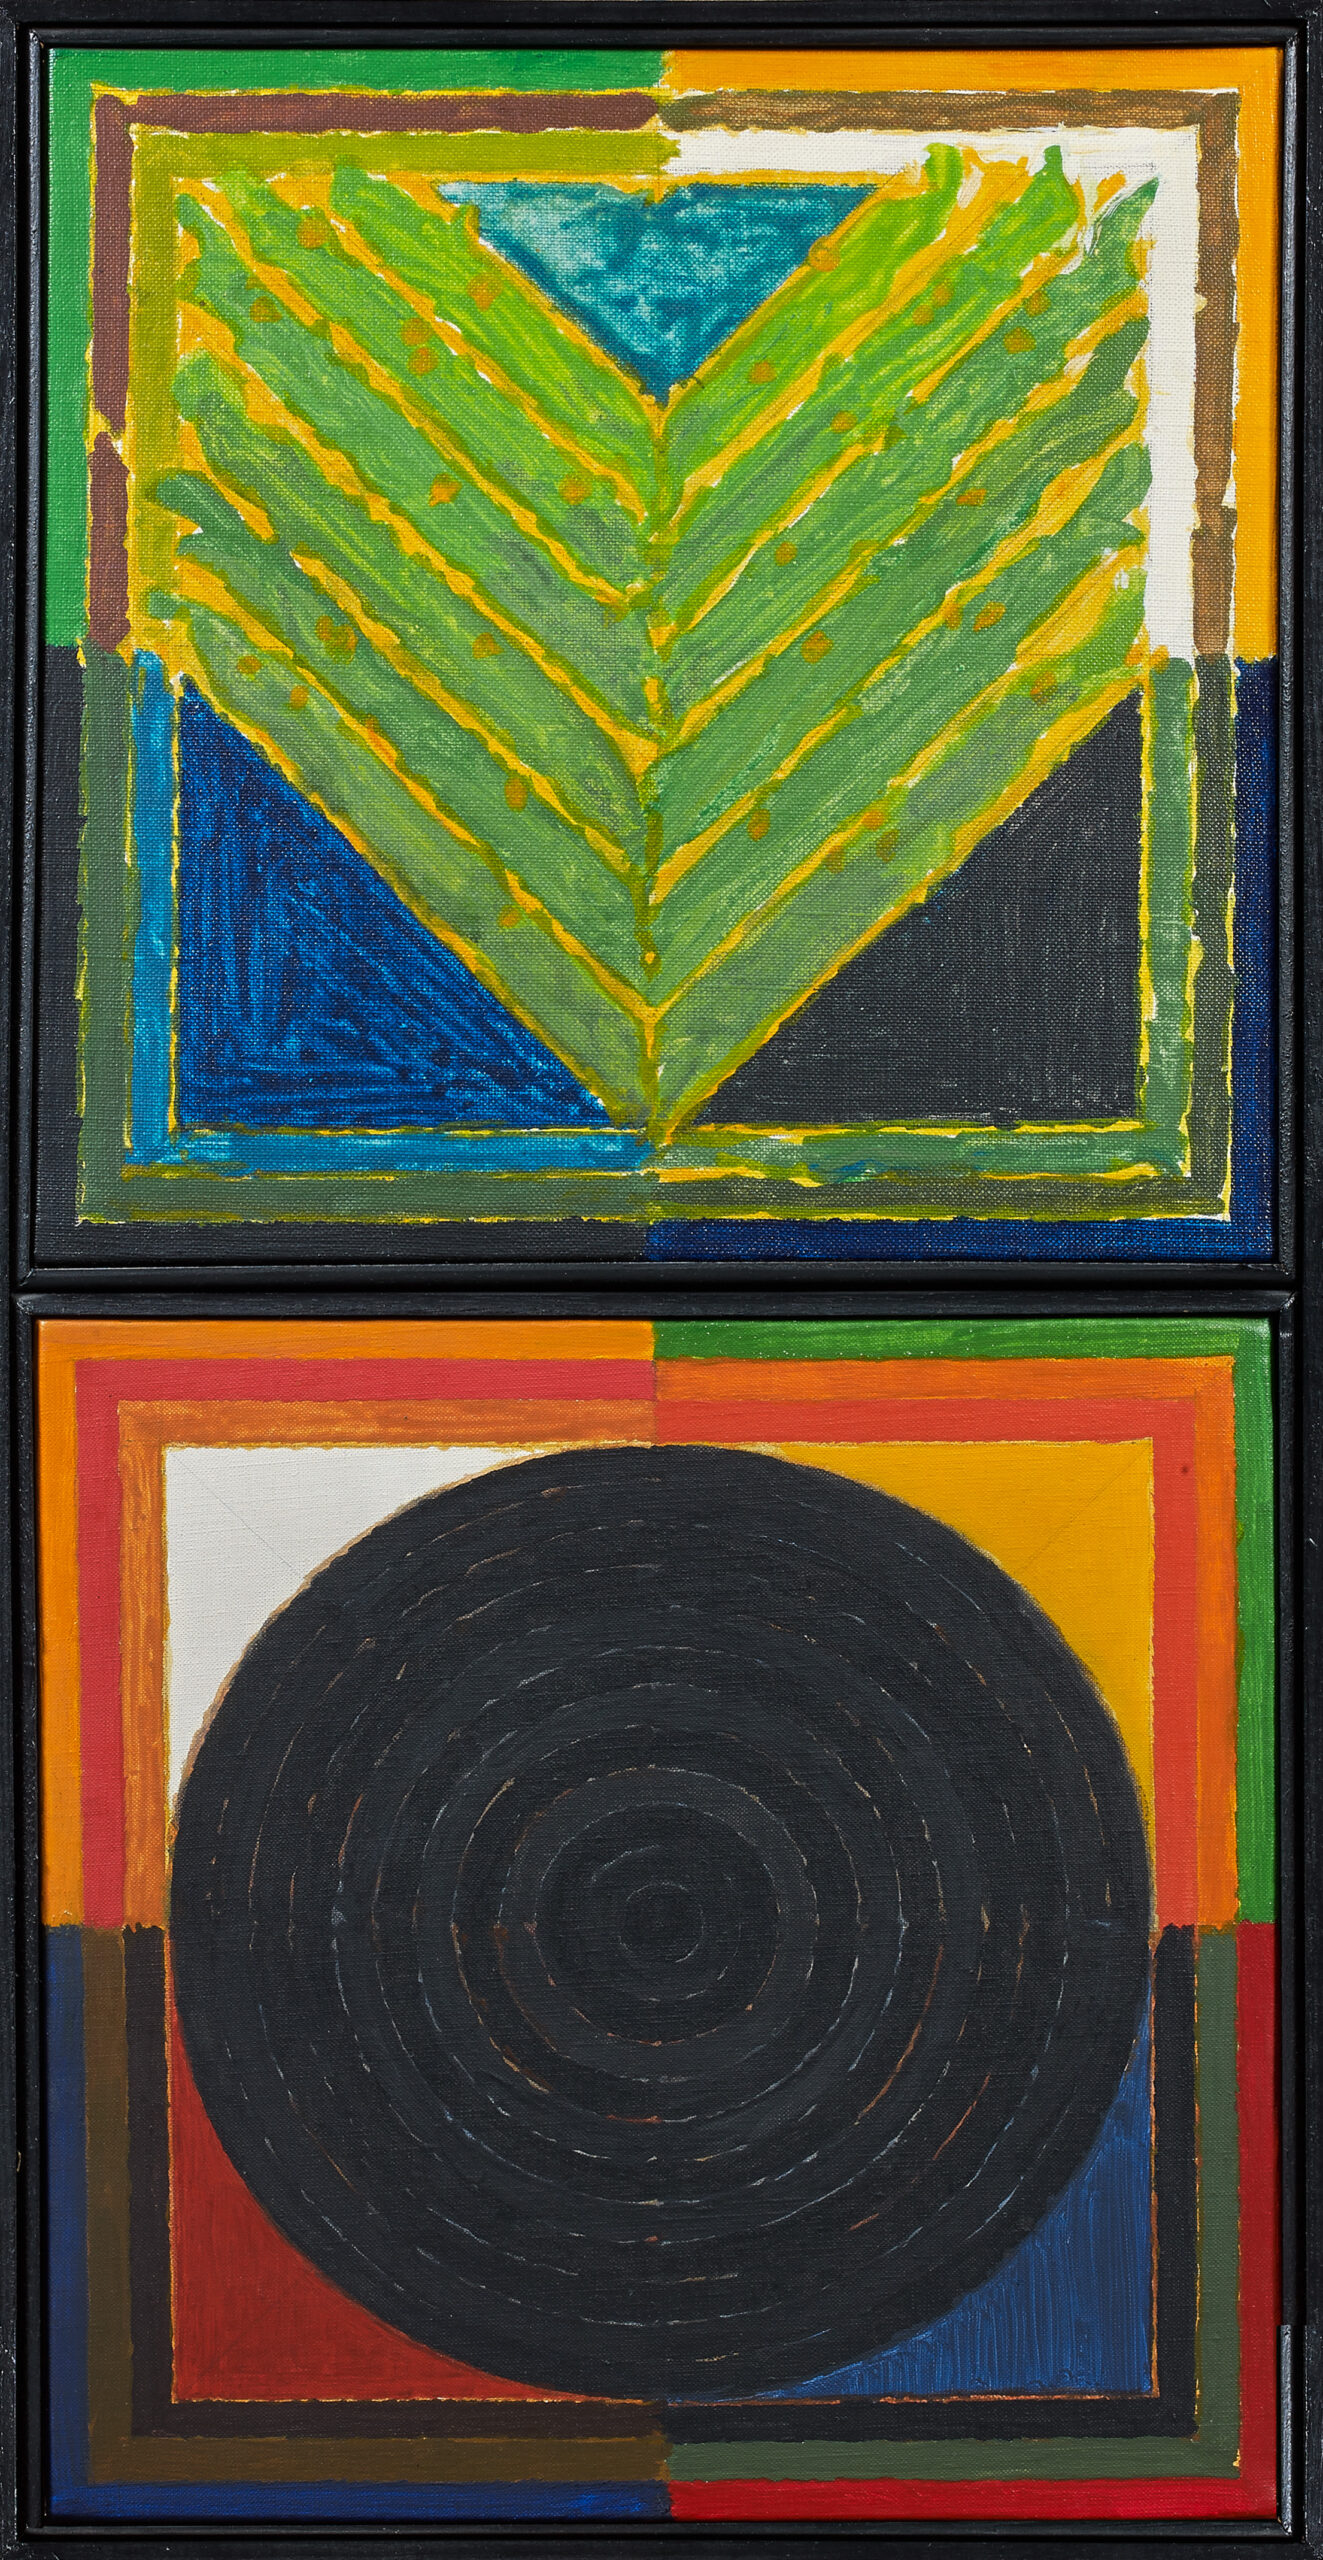 SAYED HAIDER RAZA (1922-2016) Bindu/Germination, 1986 Acrylic on canvas, diptych Each panel signed, dated, titled and inscribed with the size on the reverse 60 x 30 cm 23 5/8 x 11 3/4 in PROVENANCE Private Collection, Paris Grosvenor Gallery, London EXHIBITIONS RAZA/TANTRA, Frieze Masters (exhibition catalogue), London, 2019, p.2